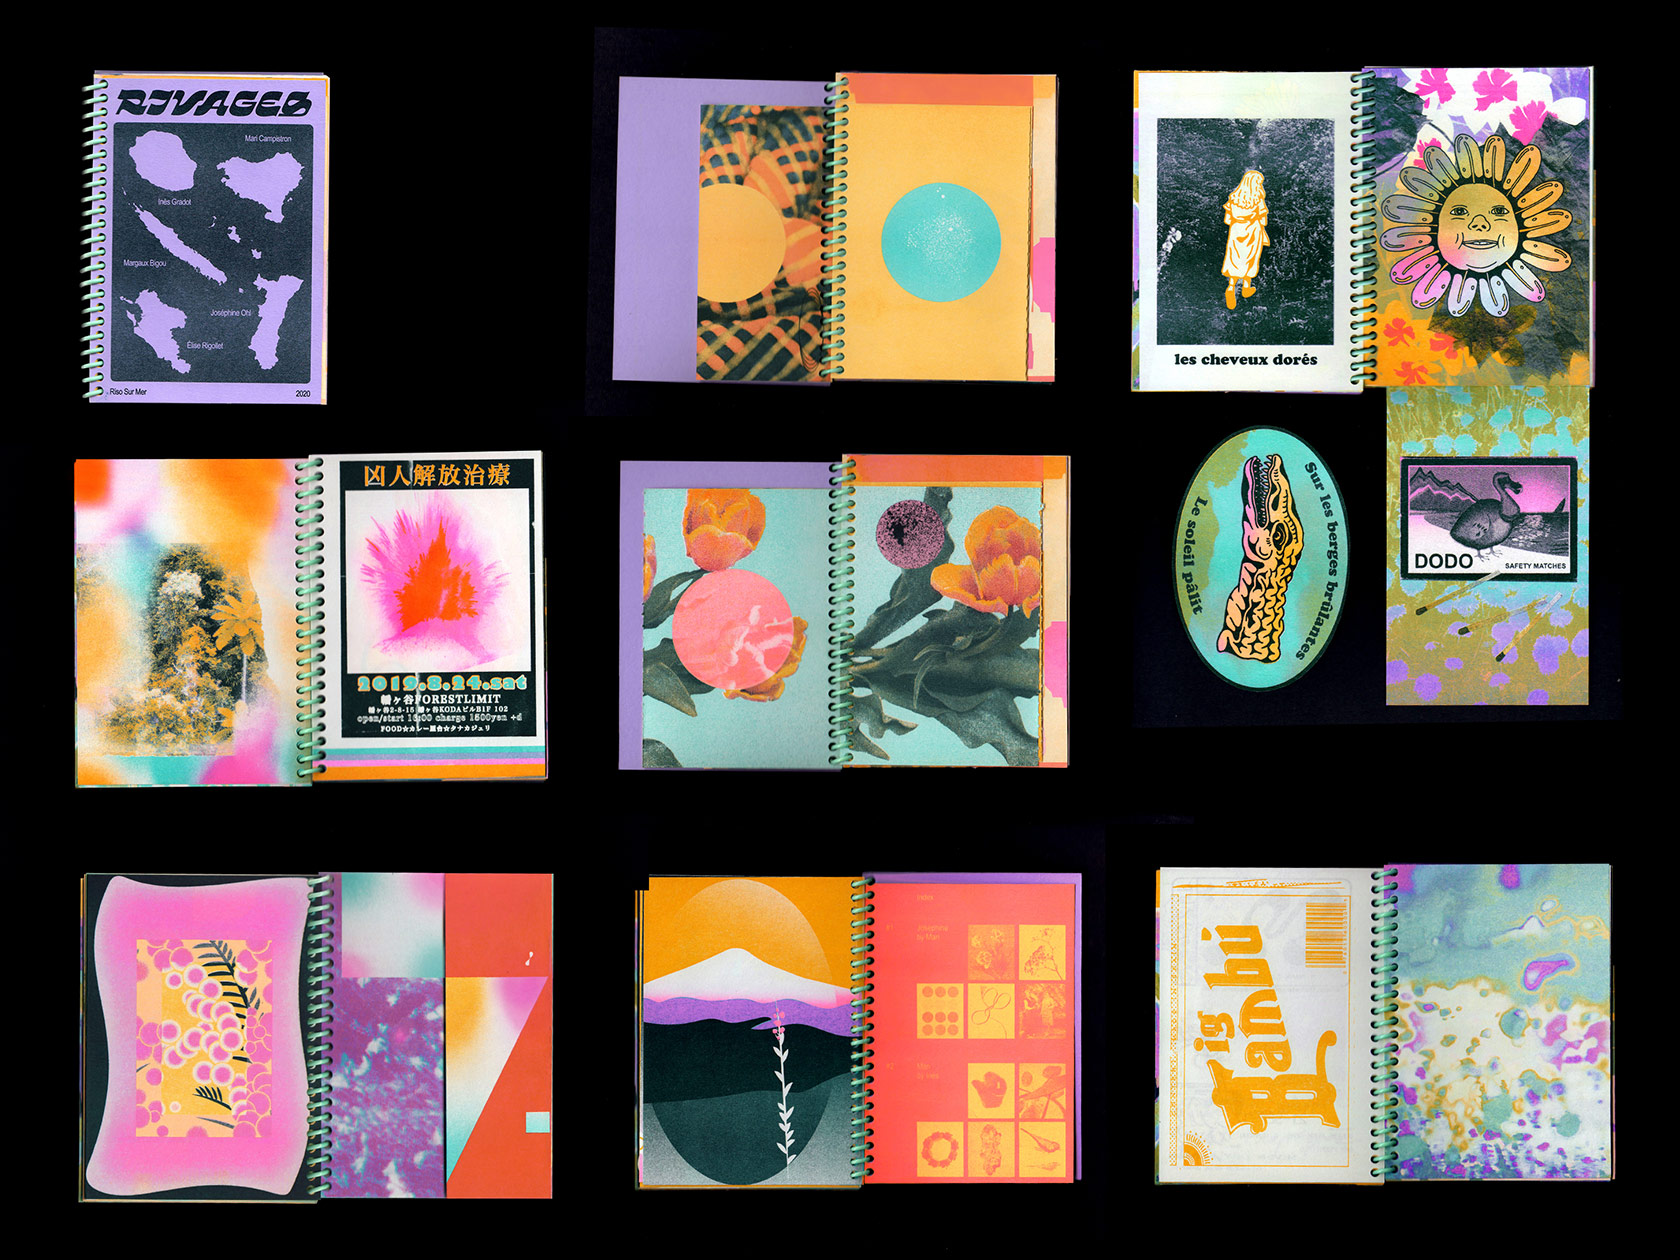 Riso sur Mer is a experimental riso-printing collective, collaborating across continents